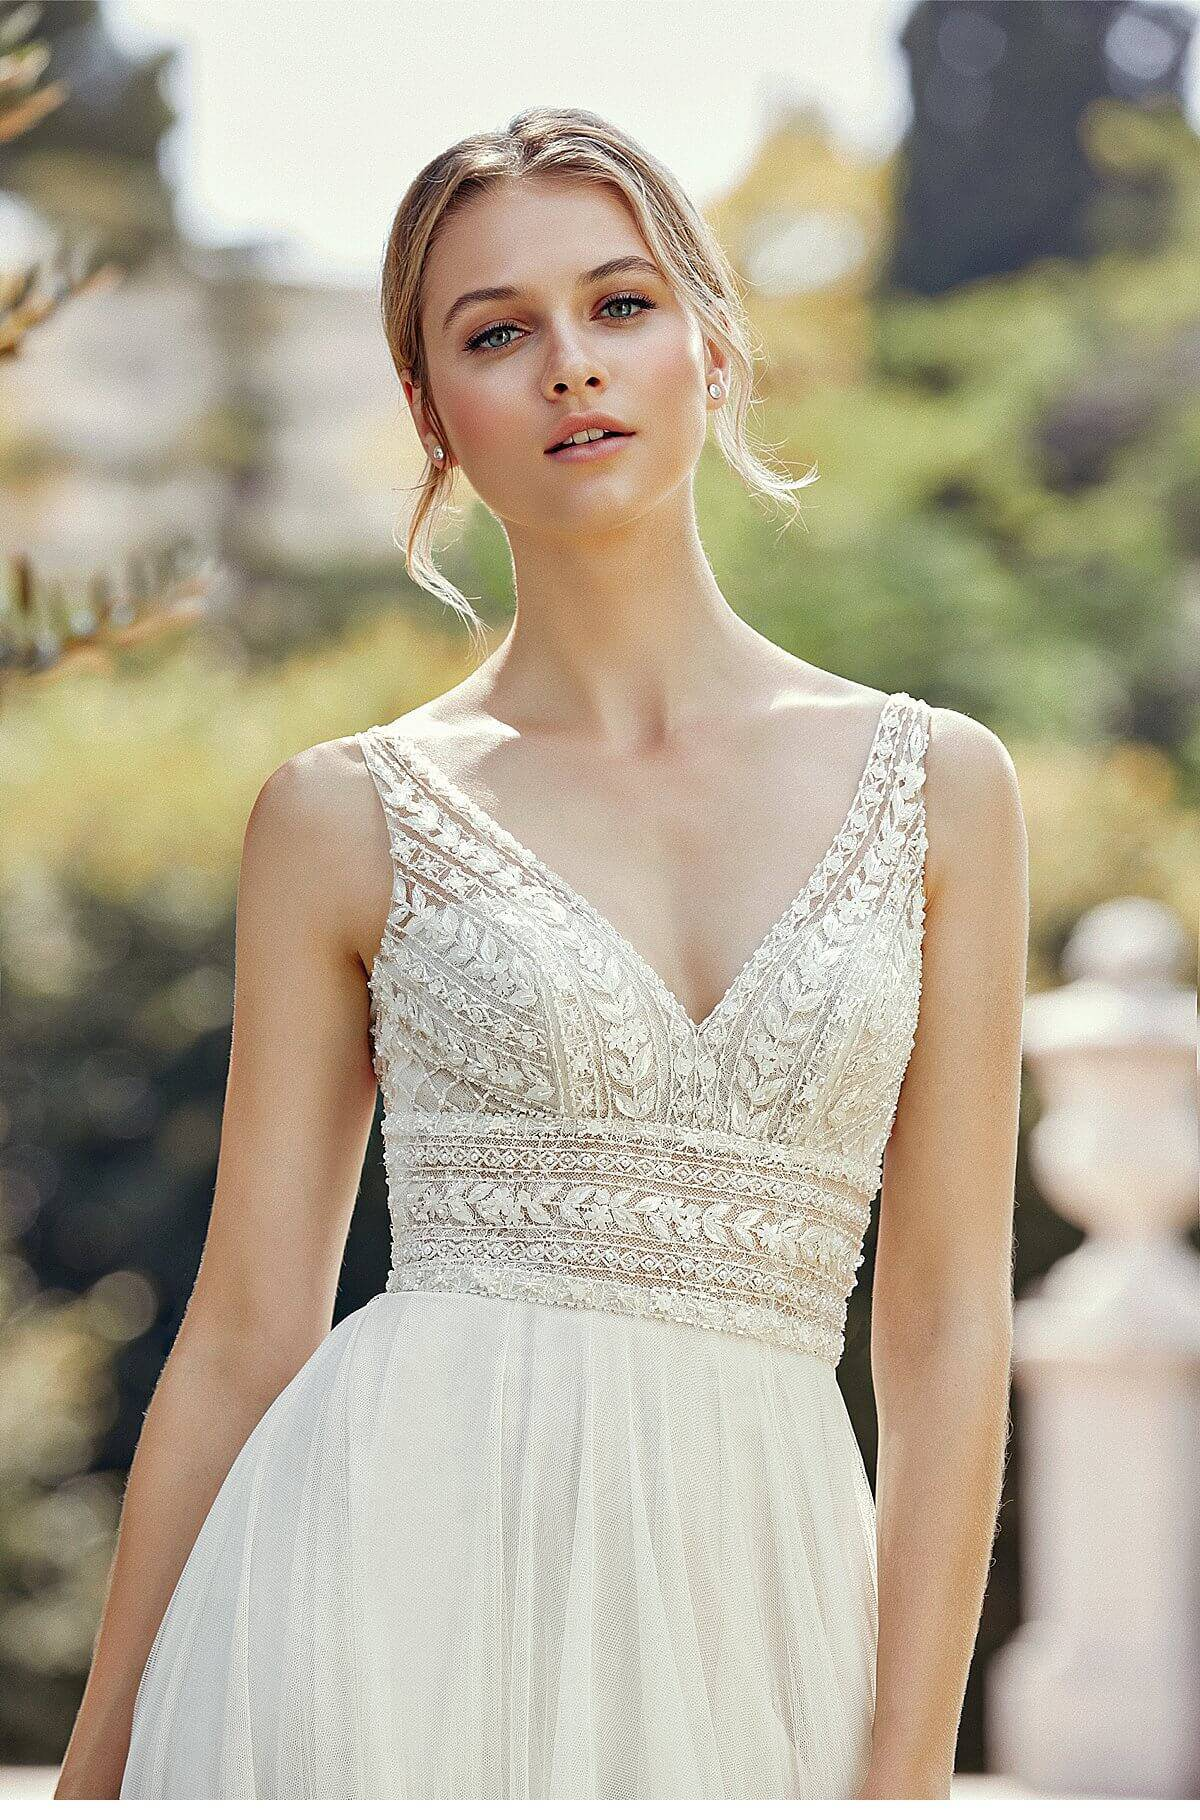 7a80fe5117 Style 44120 is a gorgeous A-Line Dress with beaded bodice. Romance is  defined in this English net A-Line dress. The dress features Chantilly lace  under ...